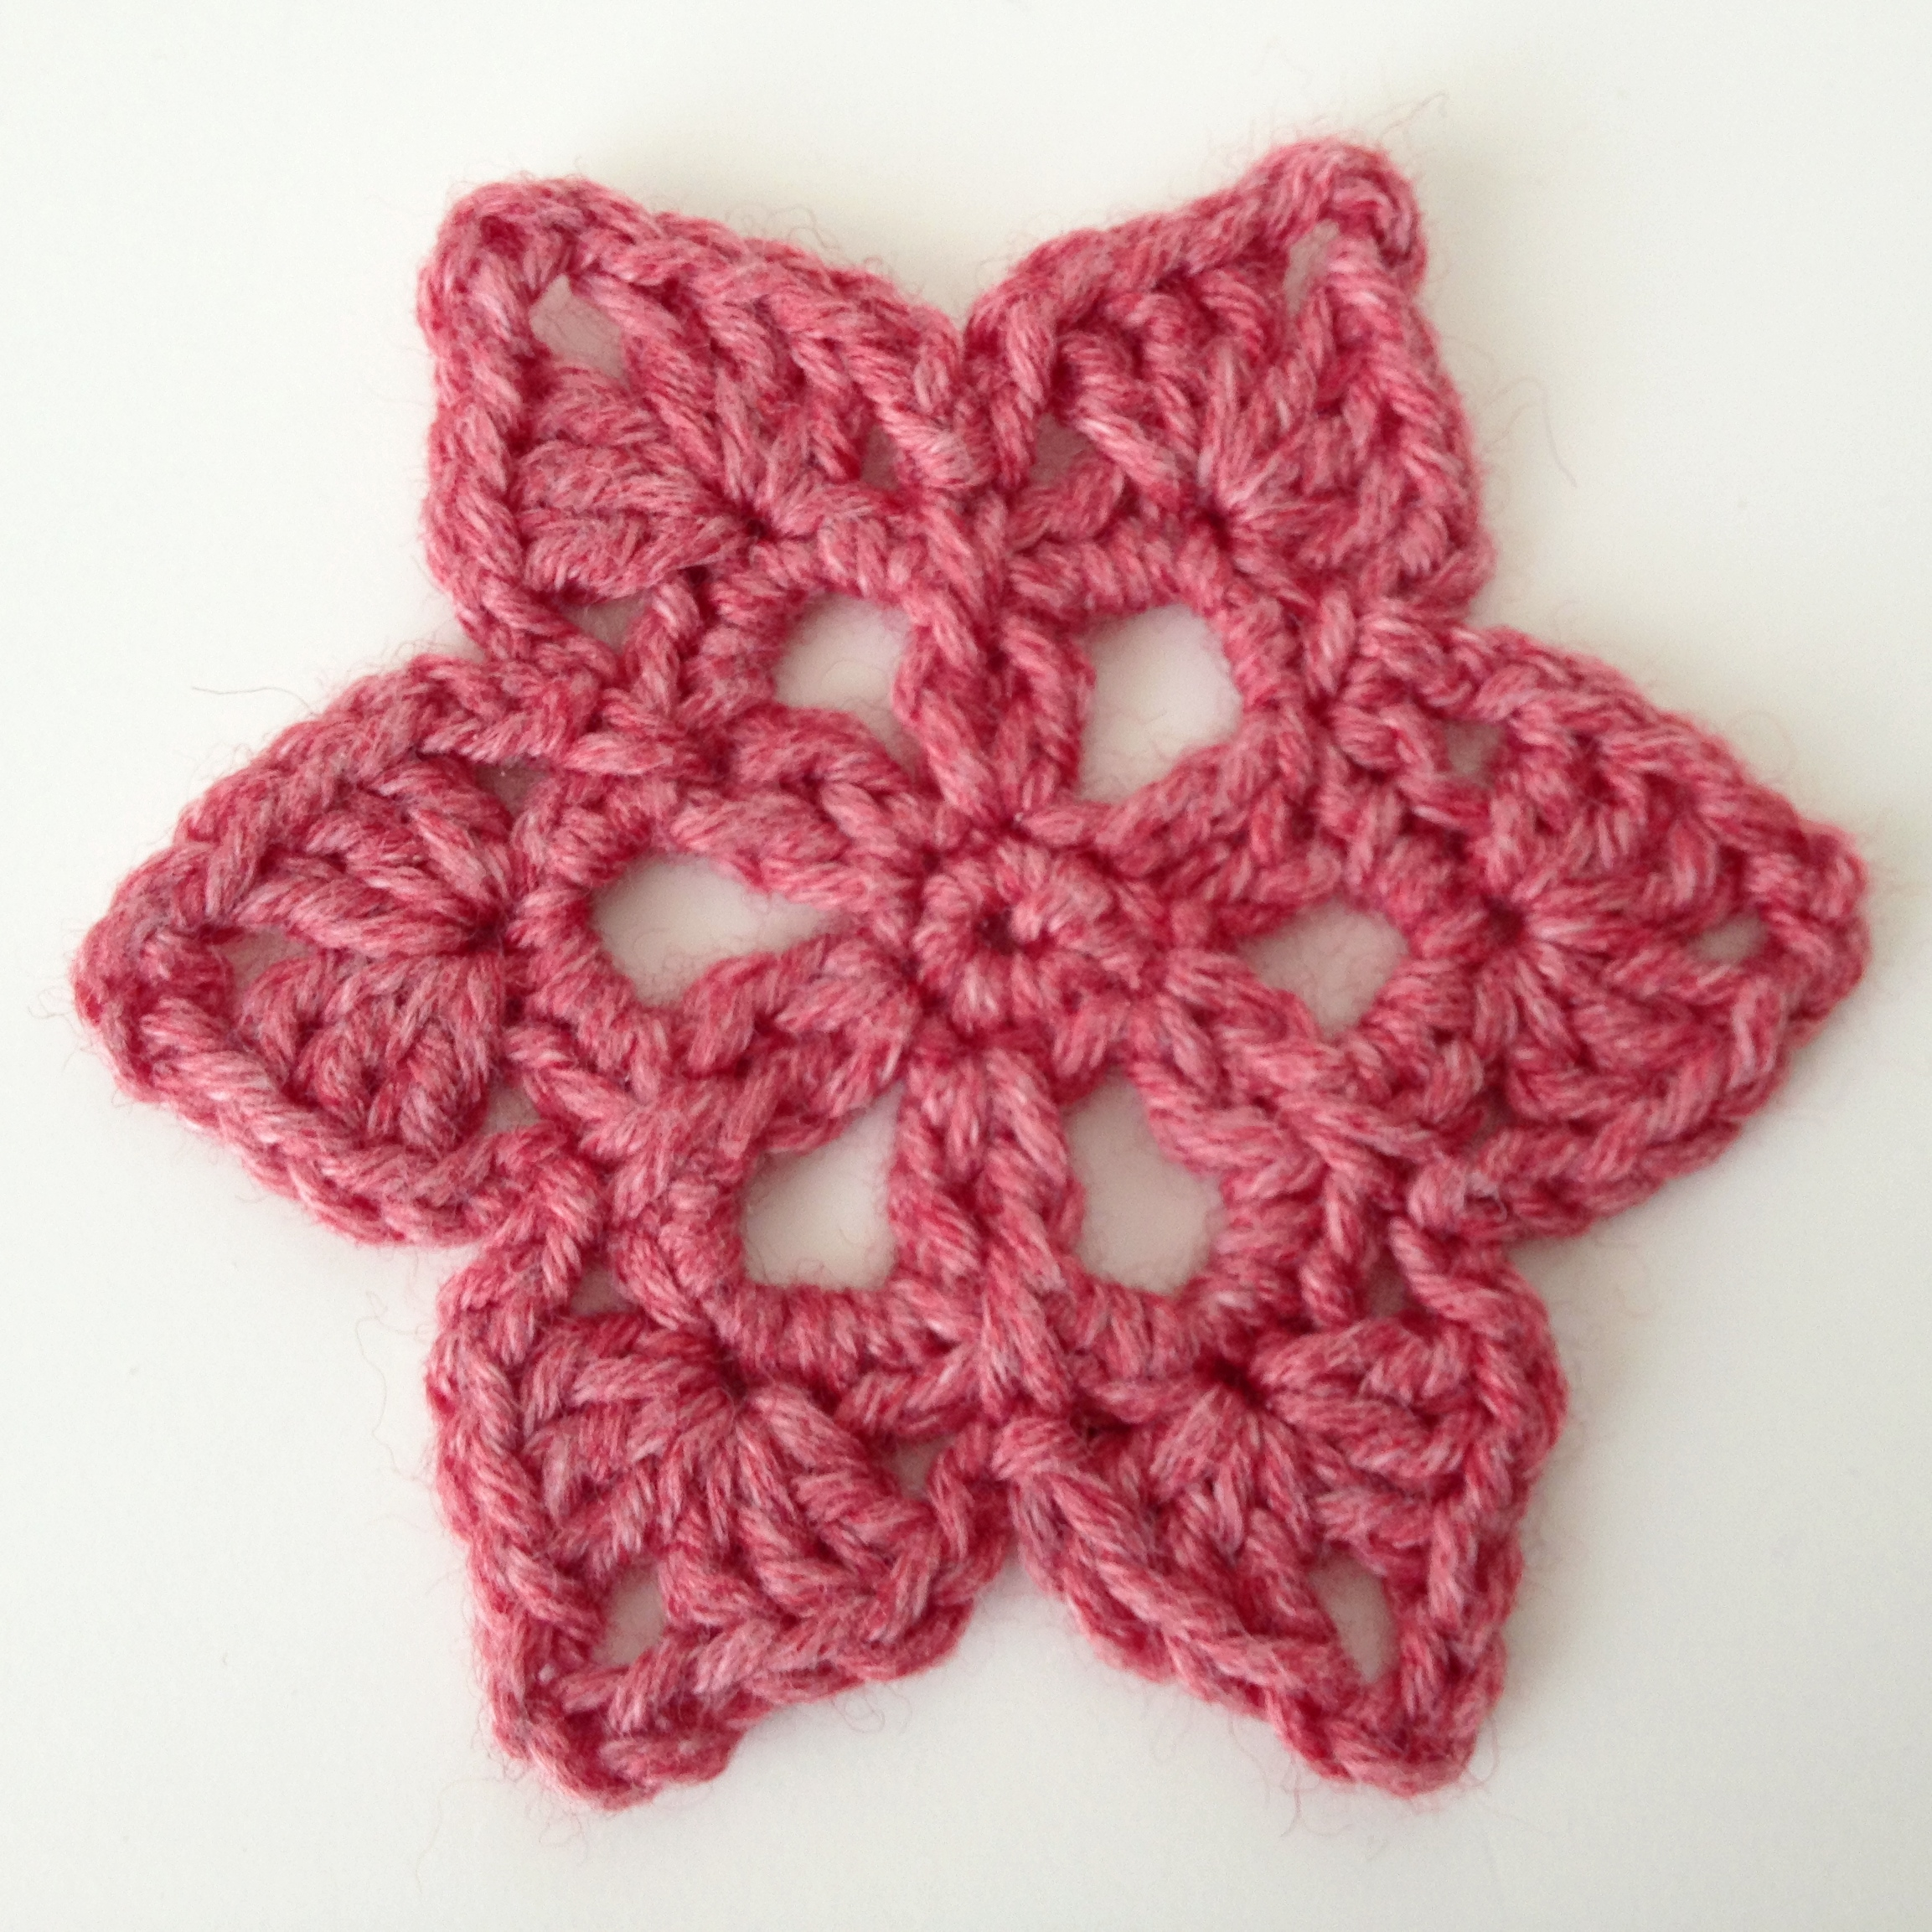 Crochet Crochet Crochet : Crochet motif #36 from the book ?Beyond the square Crochet motifs?